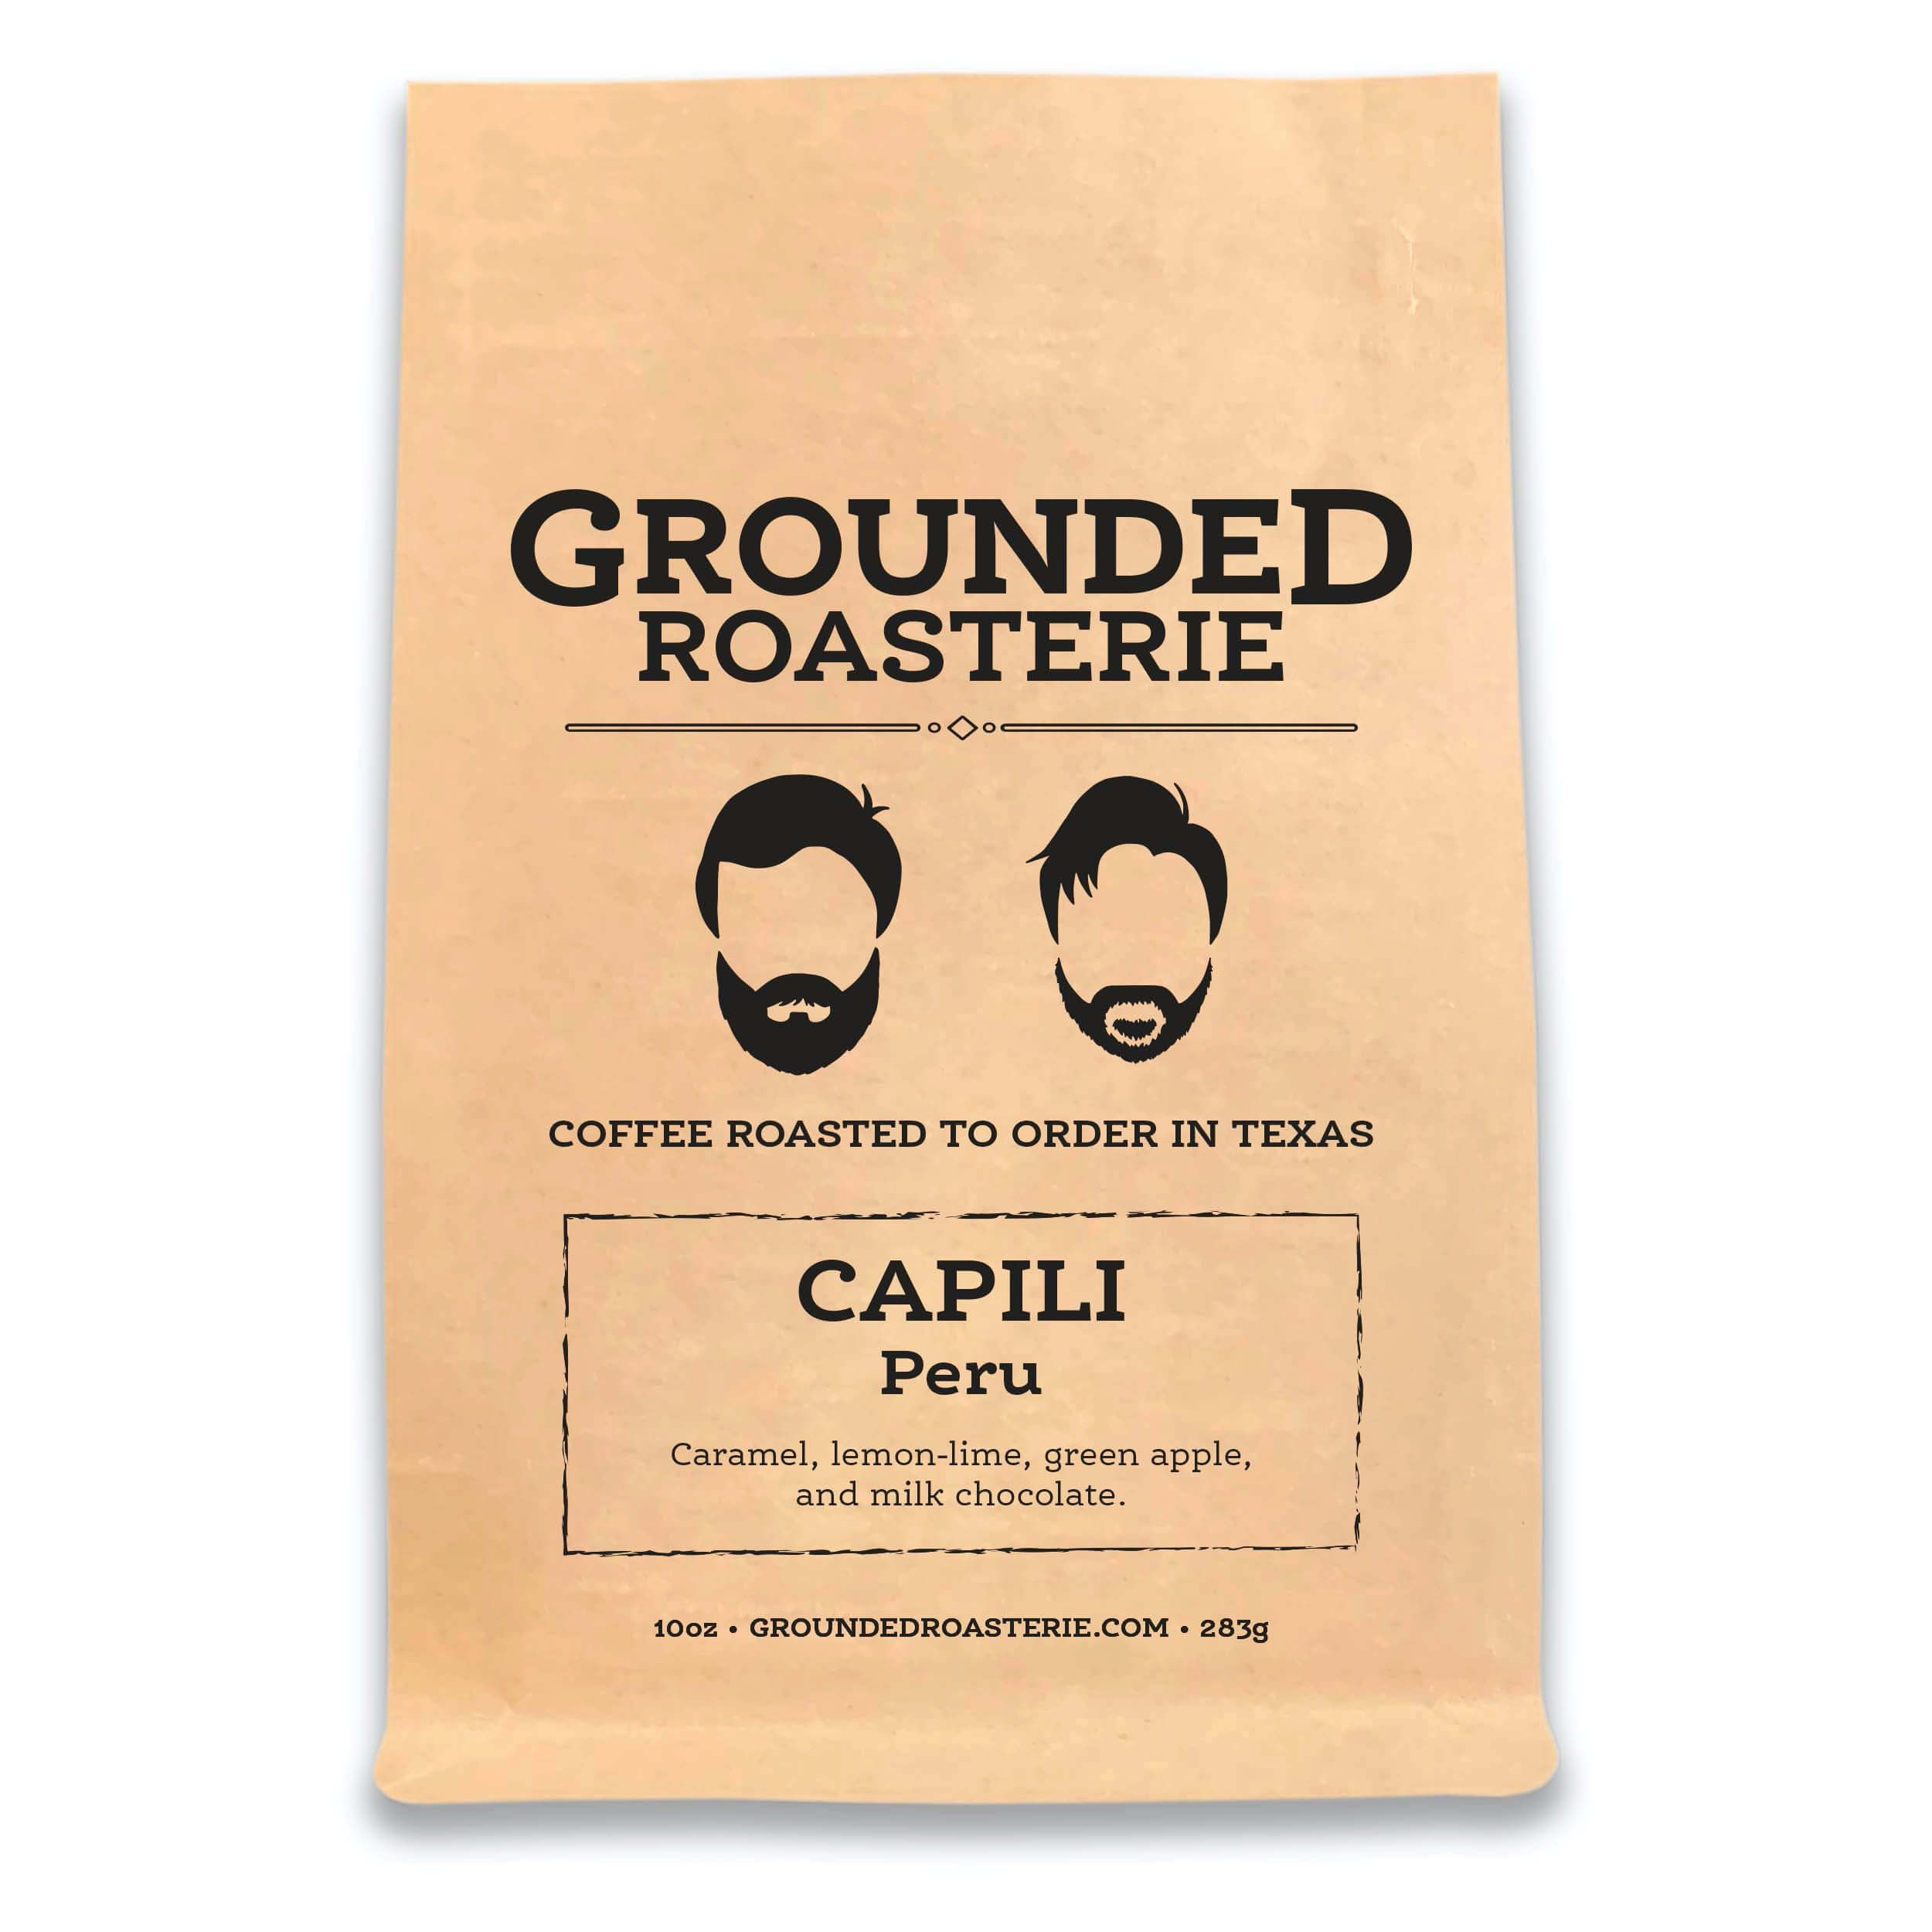 Peru Capili from Grounded Roasterie